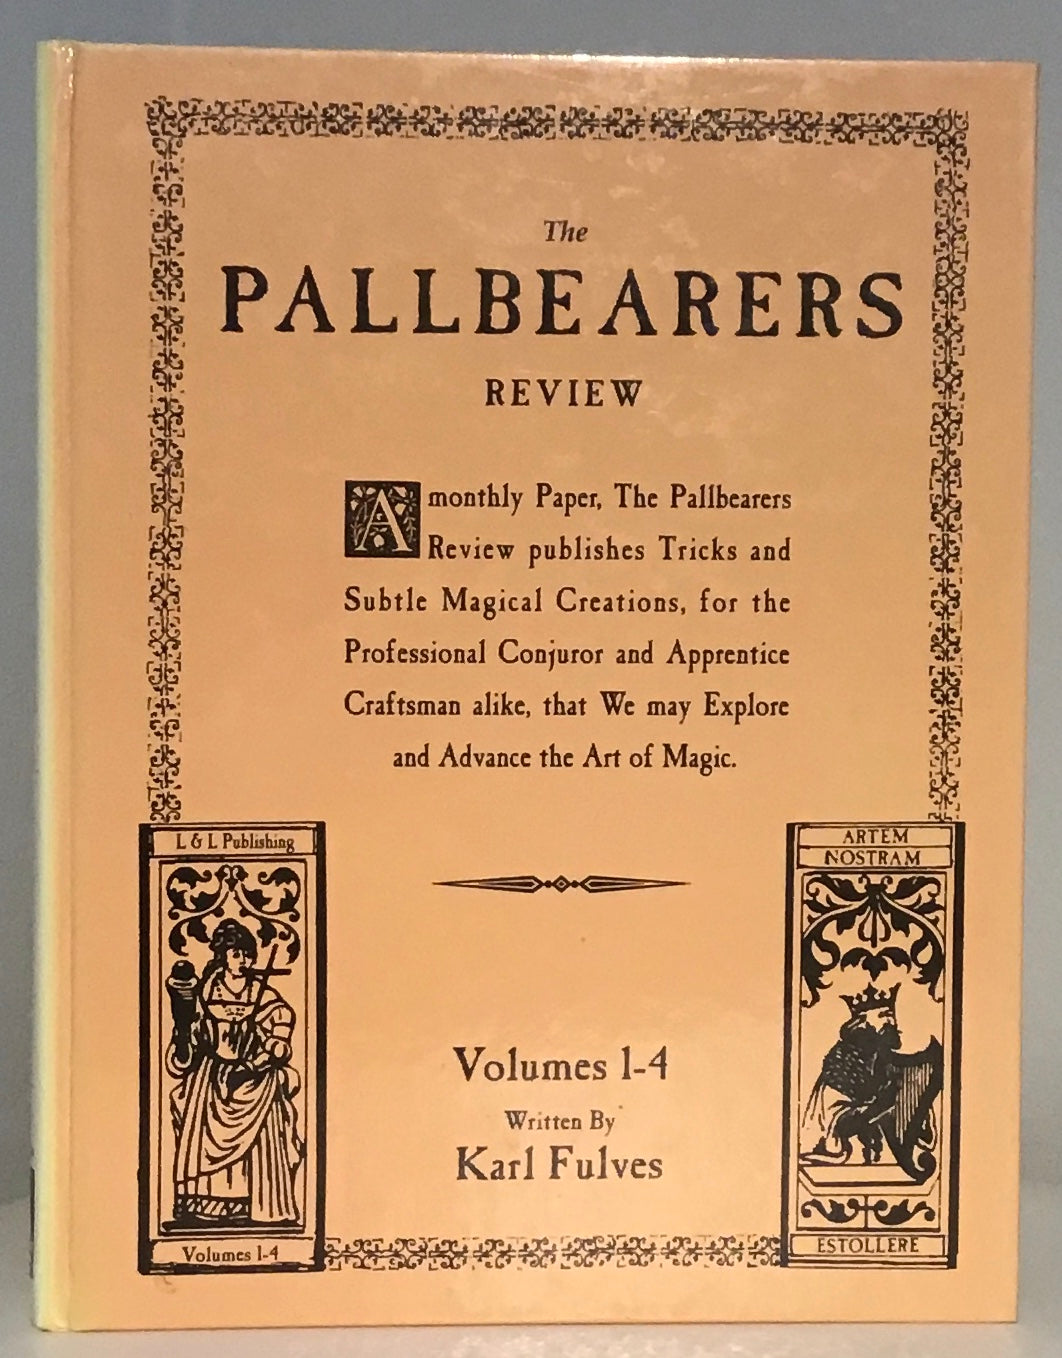 The Pallbearers Review (Volumes 1-4)